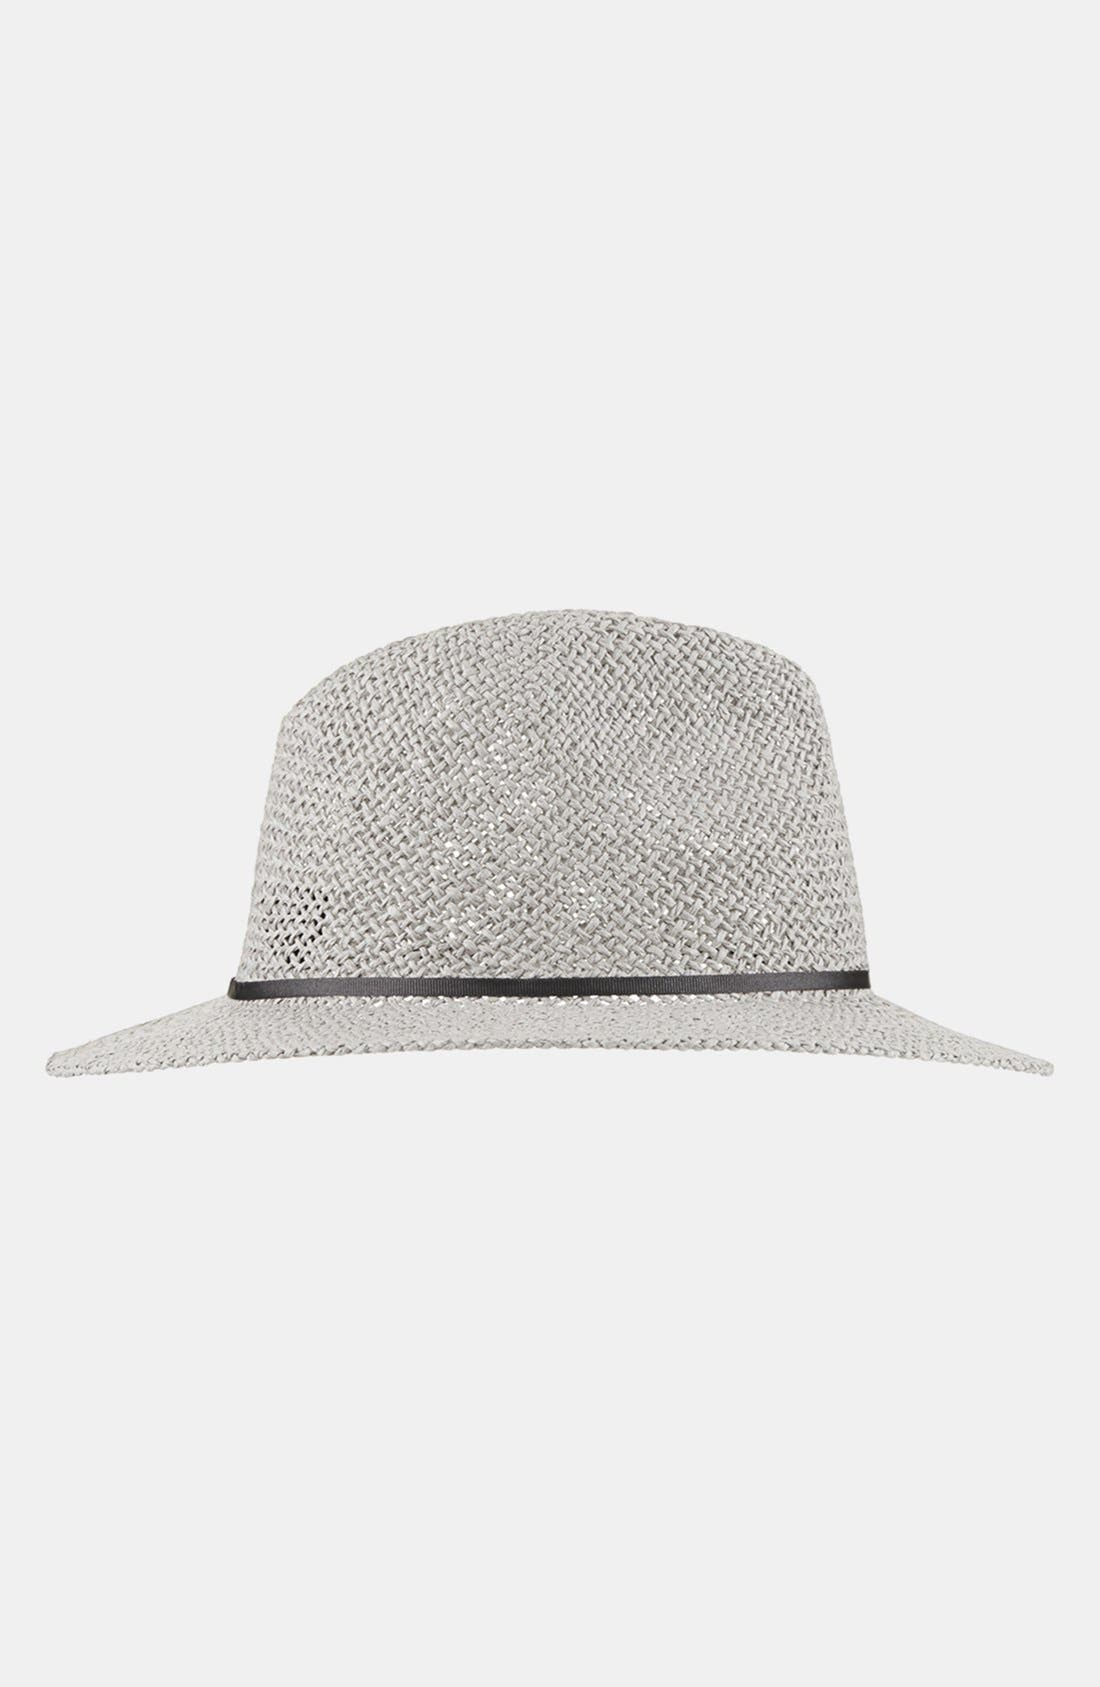 Alternate Image 1 Selected - Topshop Short Brim Straw Fedora